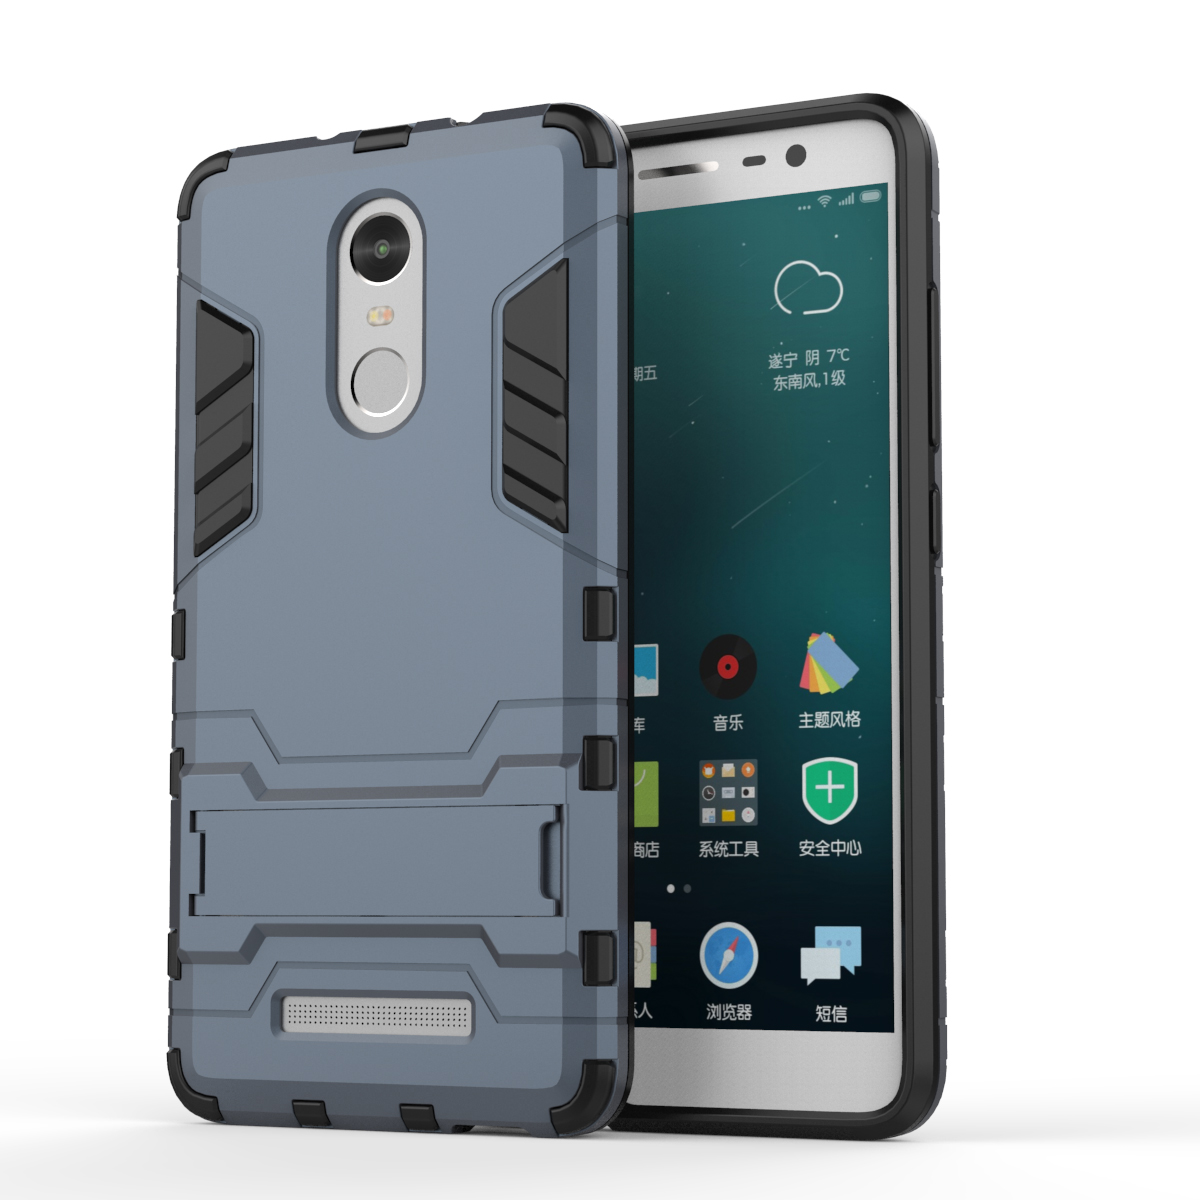 For Xiaomi Redmi Note 3 Case Slim Phone Case Shockproof Robot Armor Hybrid Rubber Hard Back Cover For Redmi Note 3 Pro Prime (